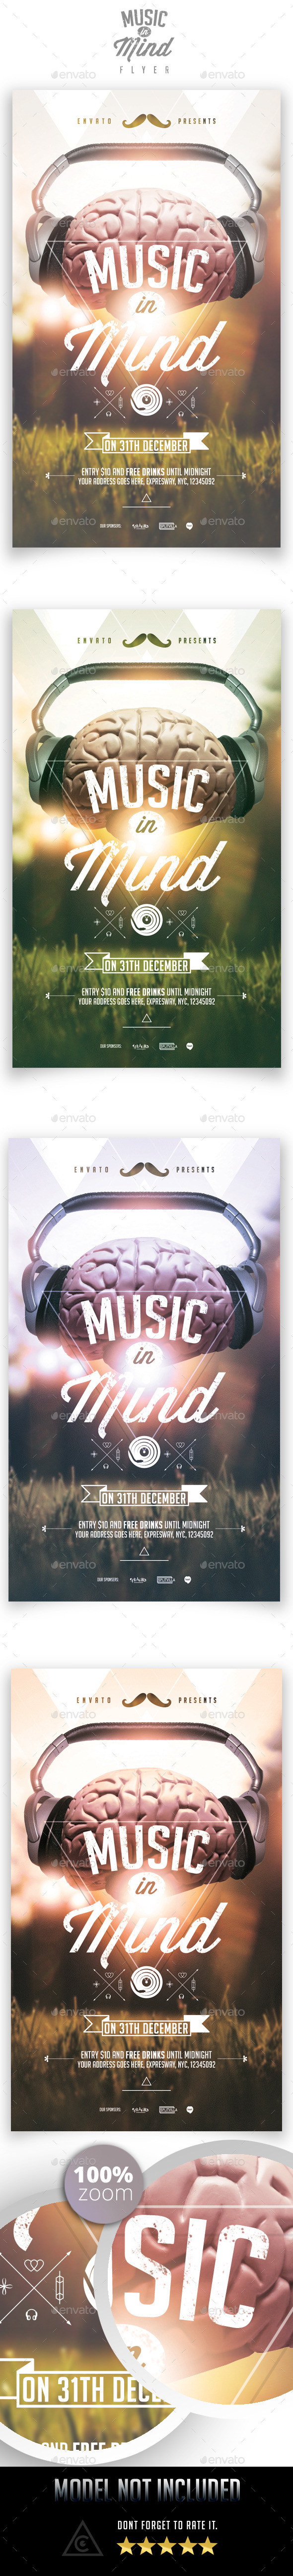 GraphicRiver Music in Mind Flyer Template 9020350